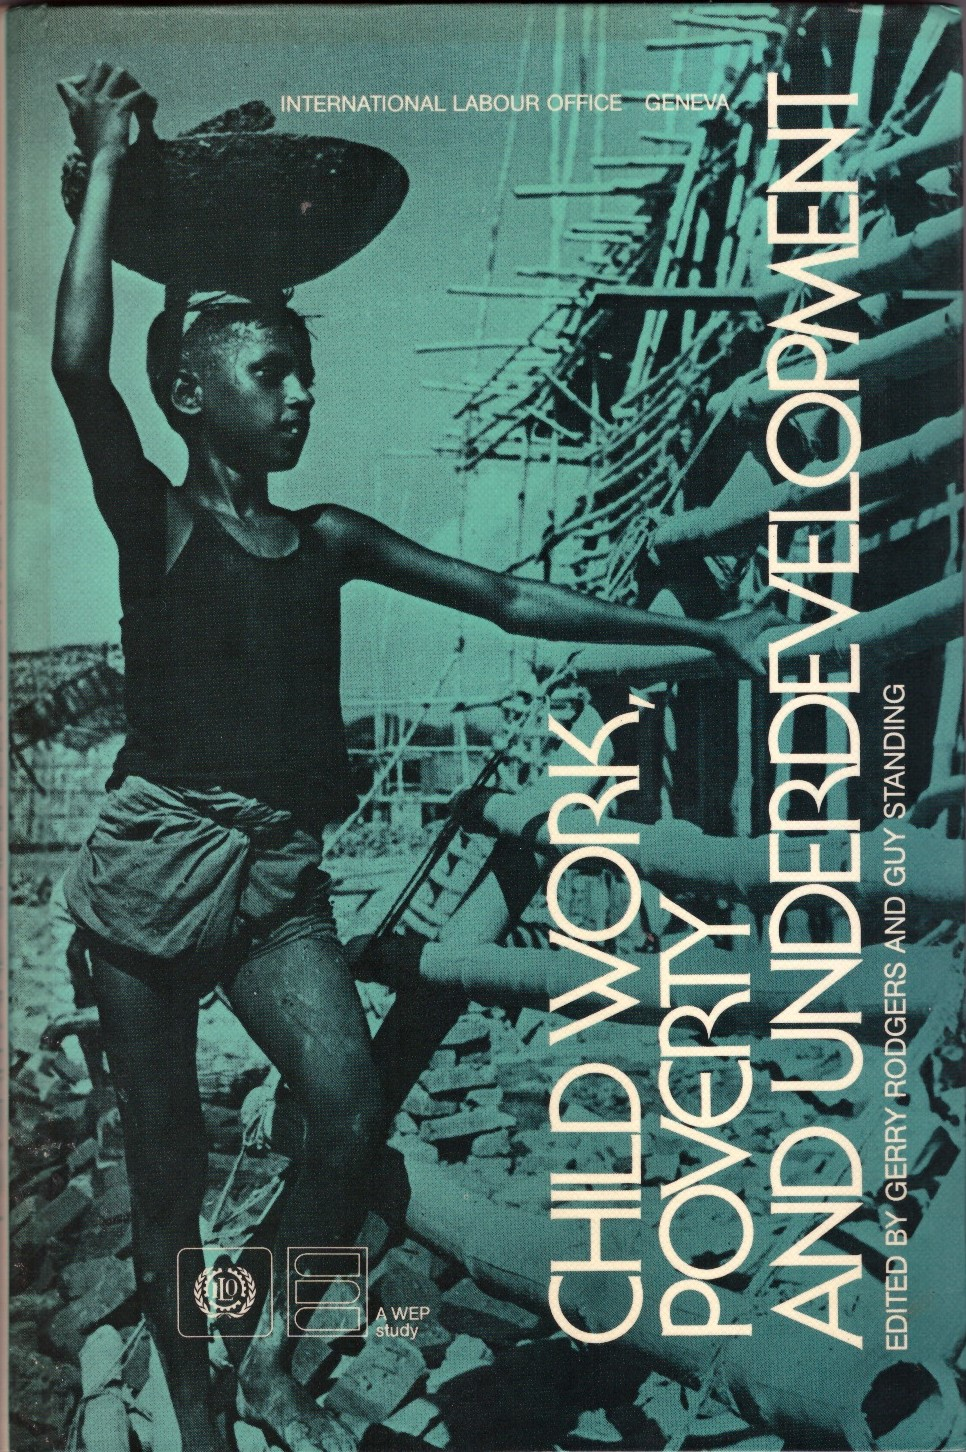 Child work, poverty & underdevelopment